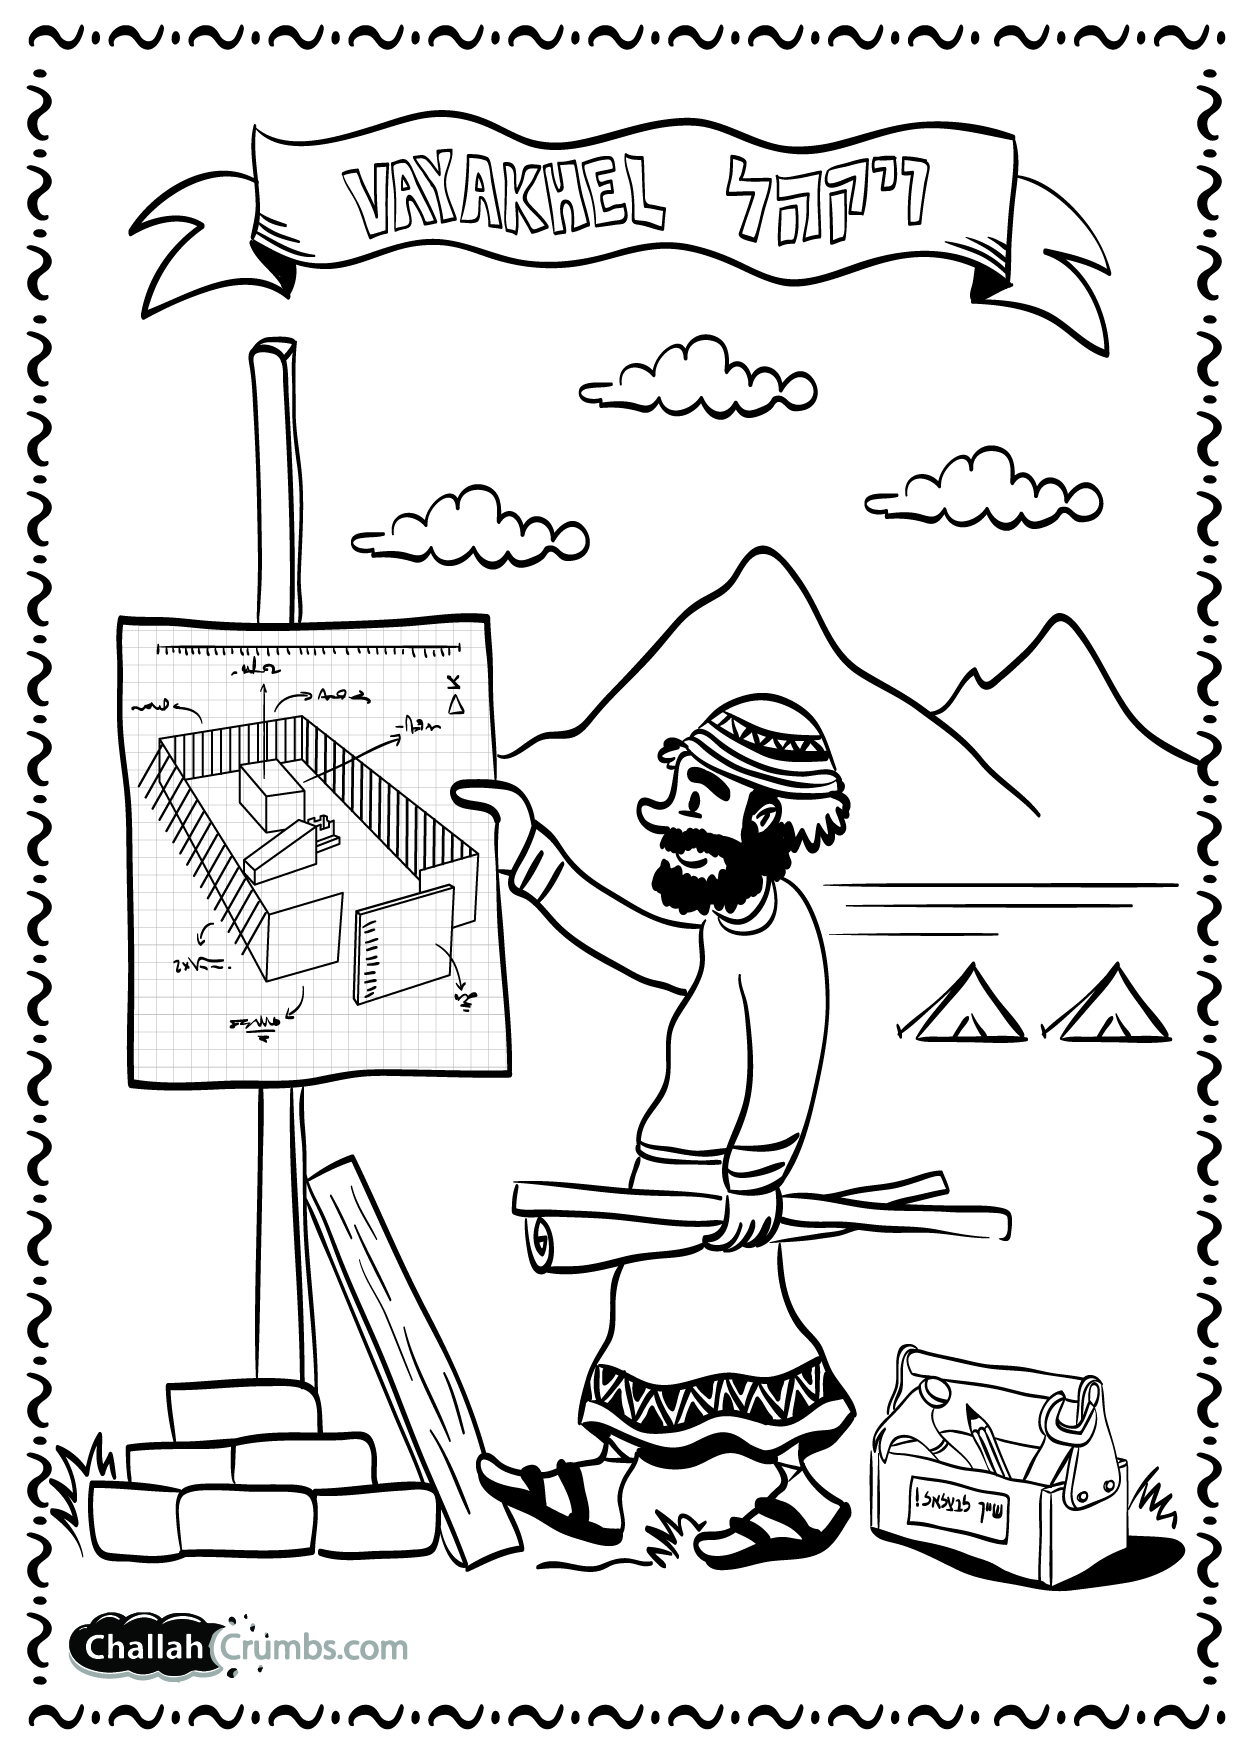 coloring page for parshat vayakhel click on picture to print